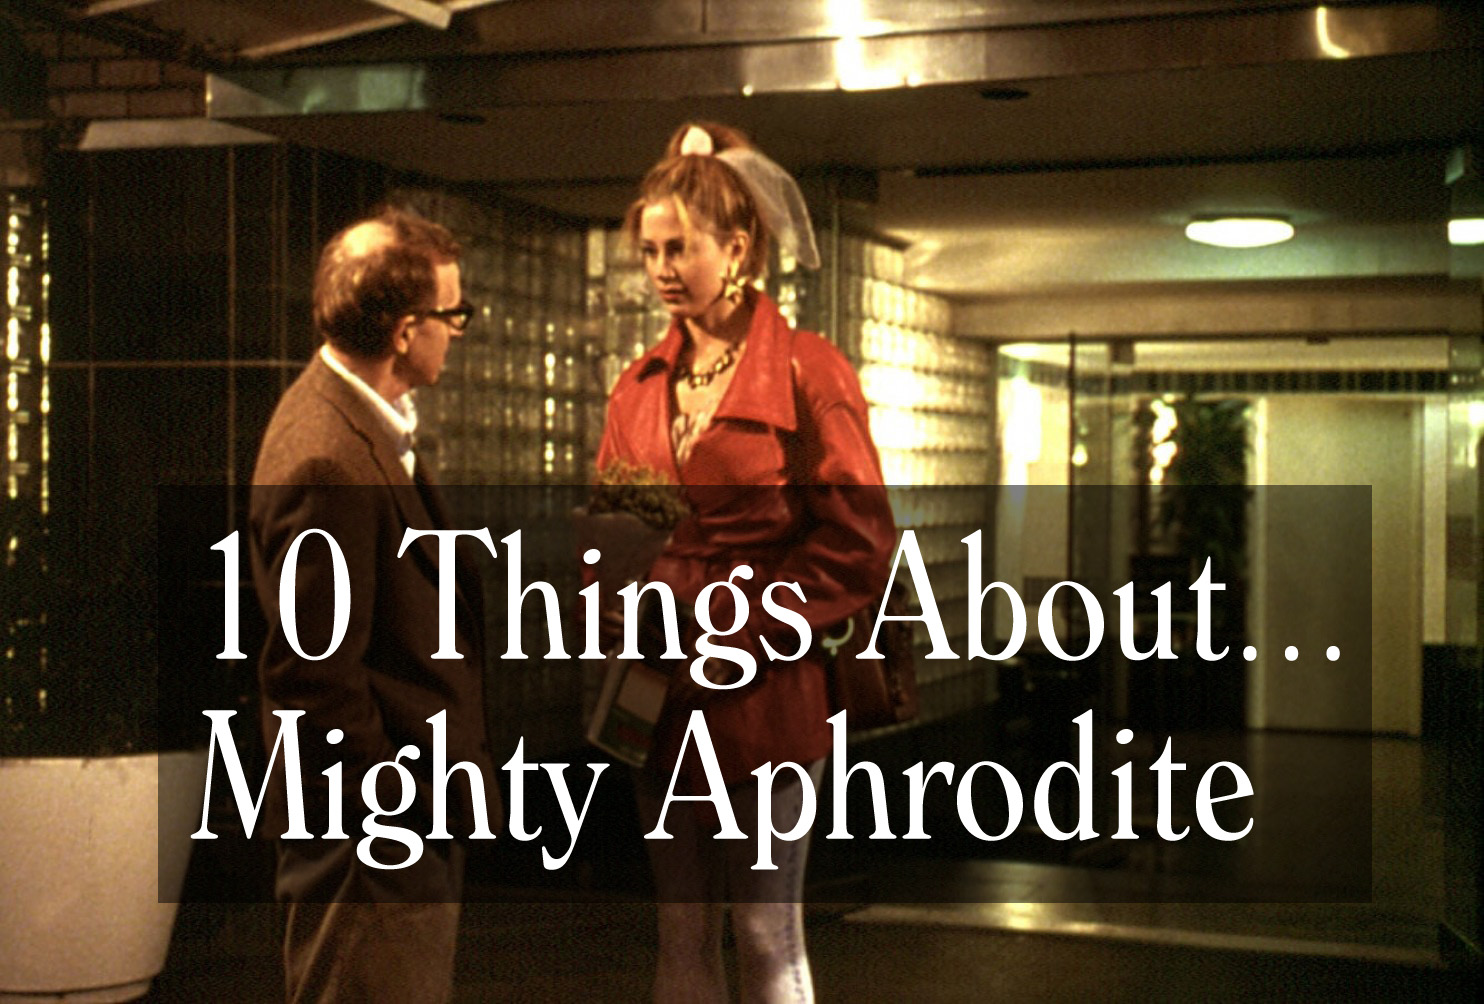 Helena Bonham Carter News Stories  The Woody Allen Pages Our Latest Video Essay Looks At S Mighty Aphrodite Its A Quiet  Little Gem With A Sweet Story And One Powerhouse Performance English Essay Example also Essay Topics For Research Paper  Essay In English Language